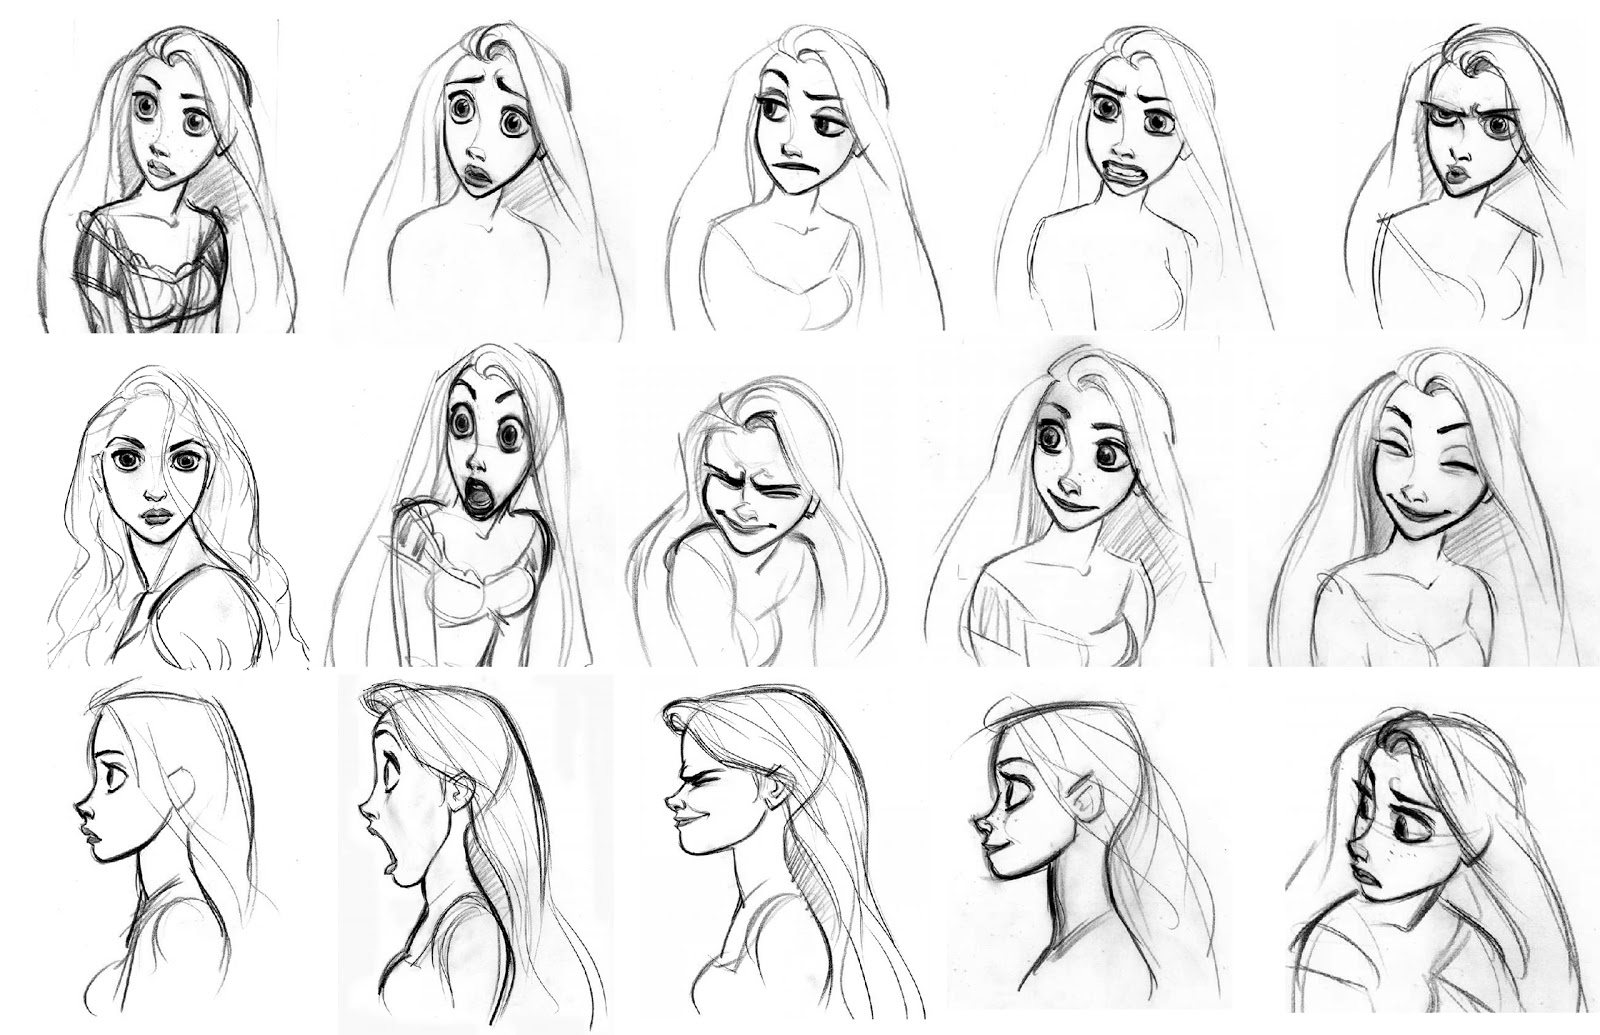 Character Design Expression : Rapunzel character designs expression sheets tangled